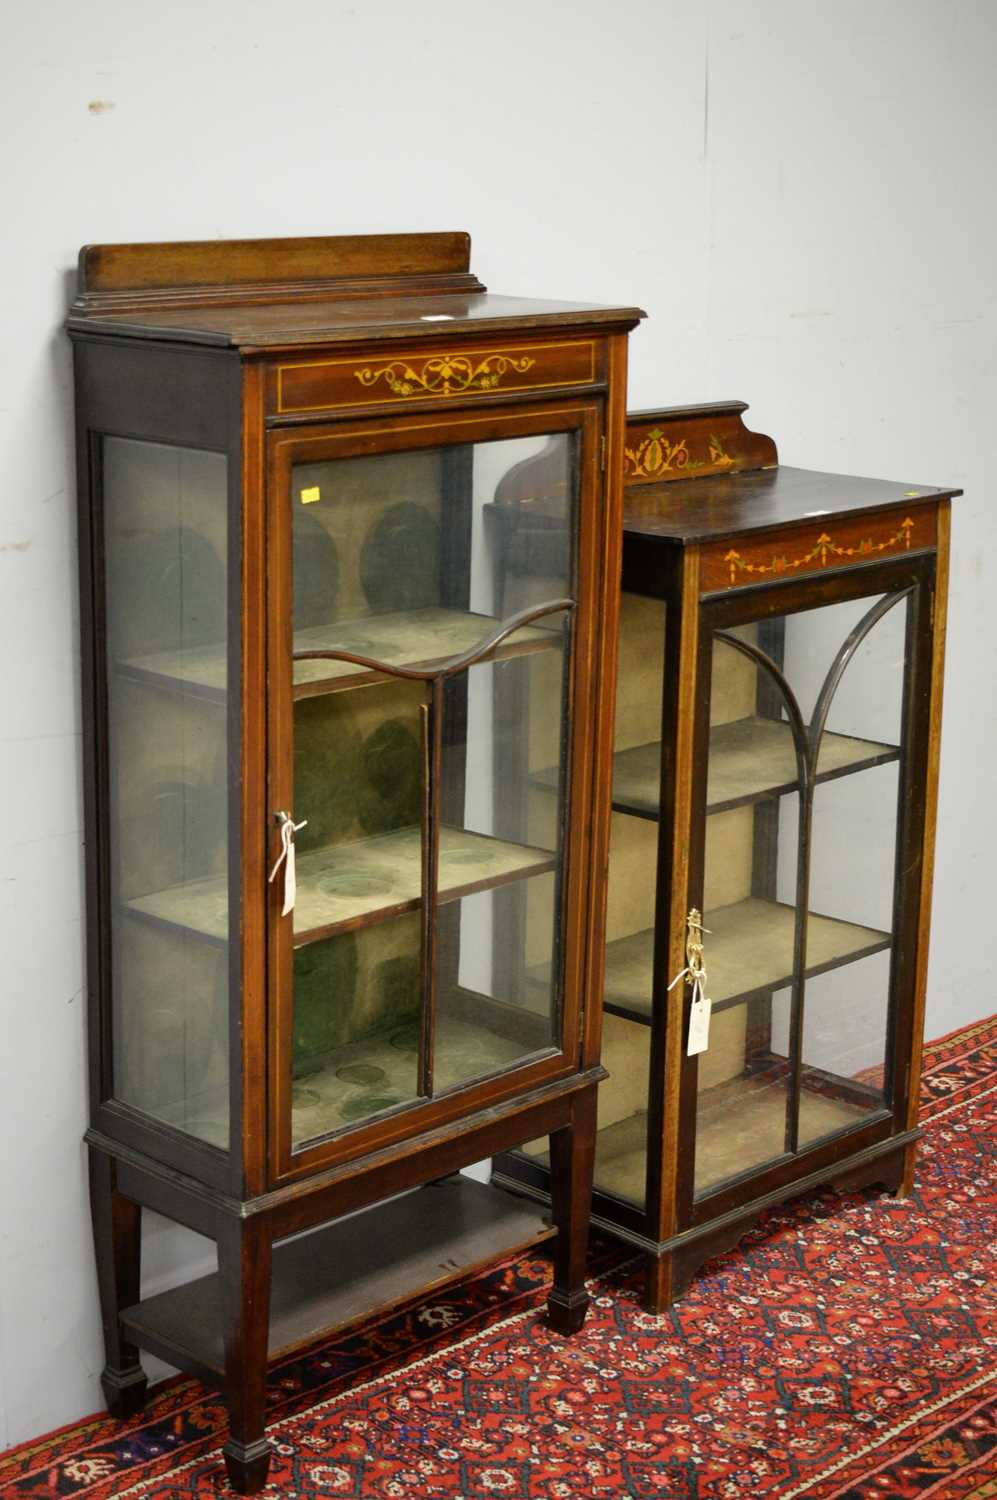 Two early 20th C display cabinets. - Image 4 of 6